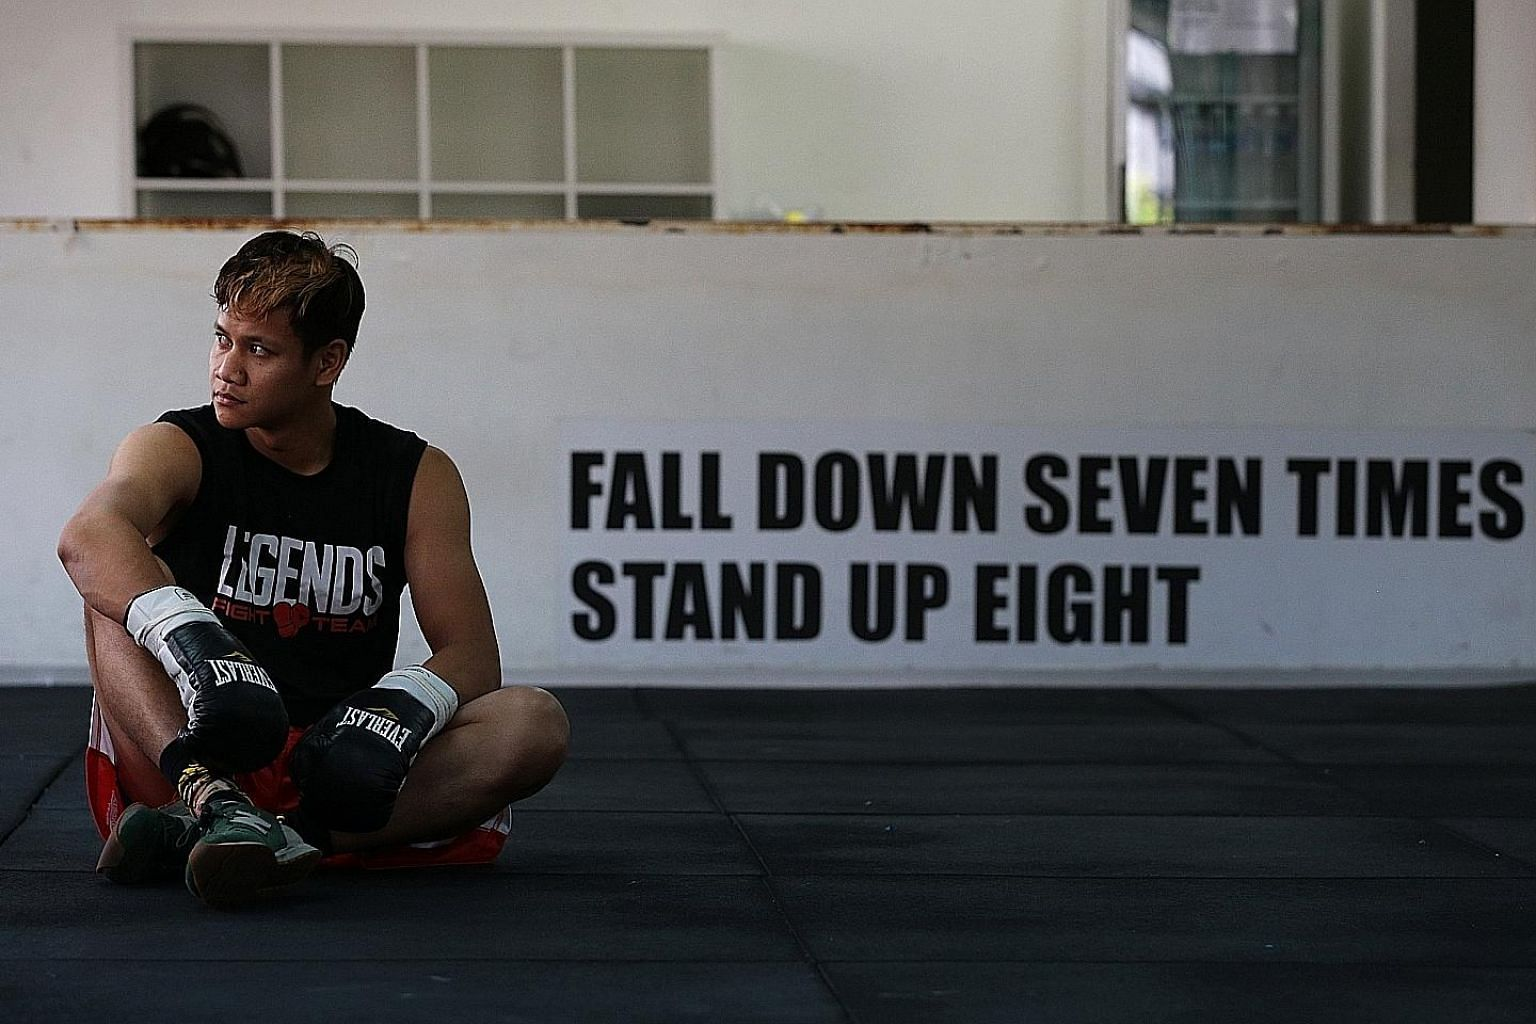 Muhamad Ridhwan's professional boxing career has been left in limbo following a fallout with his management company but he refuses to stop fighting.